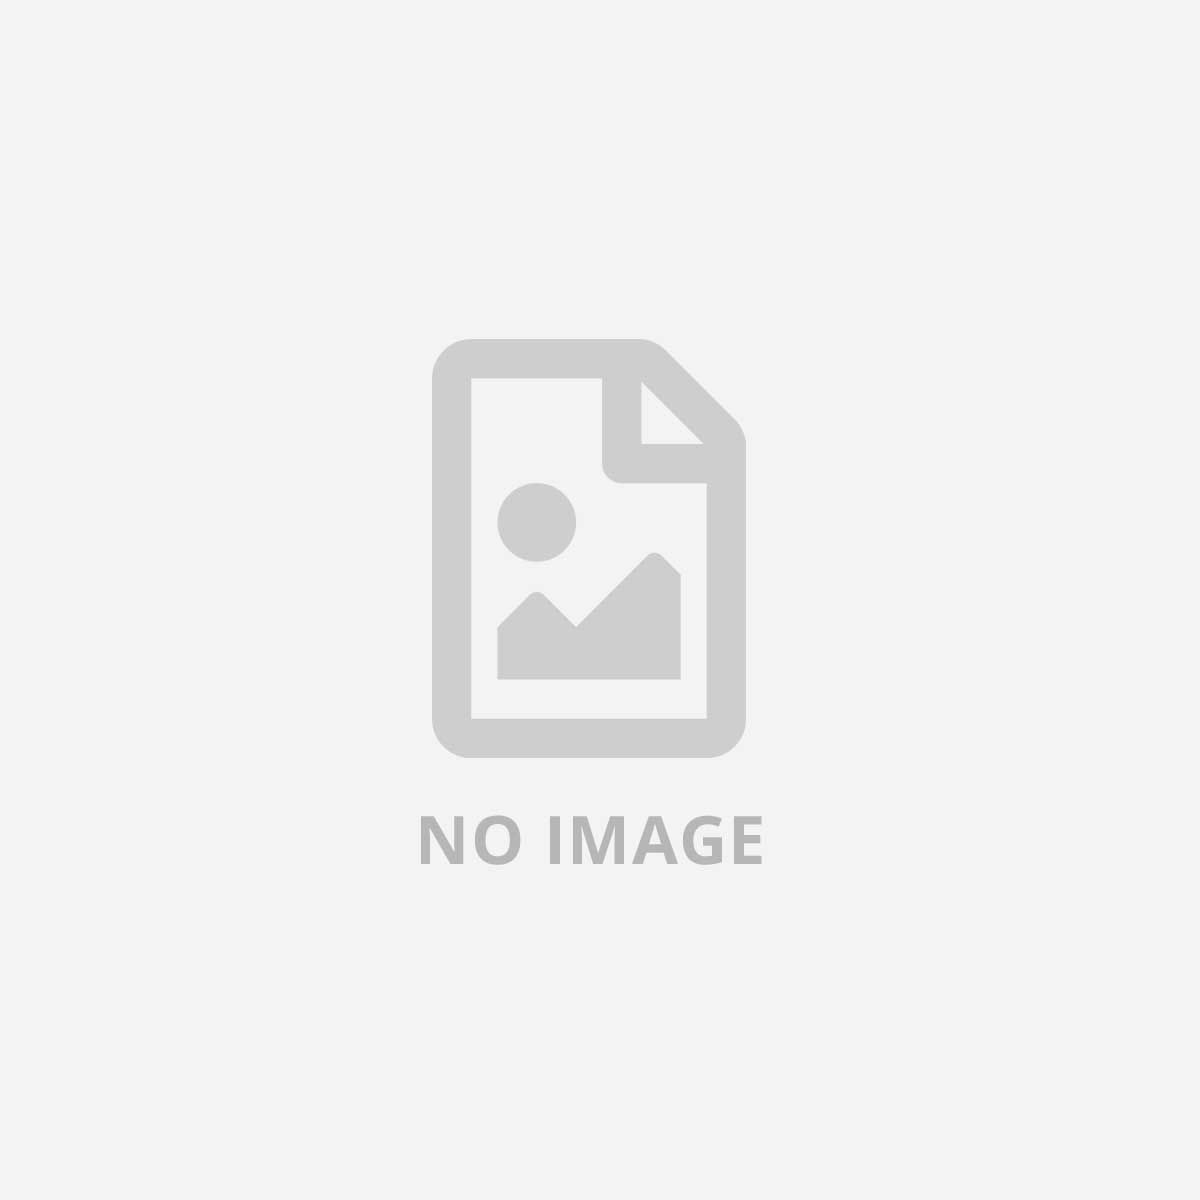 TANDBERG USB 3.0 Y-TYPE CABLE 1.5M